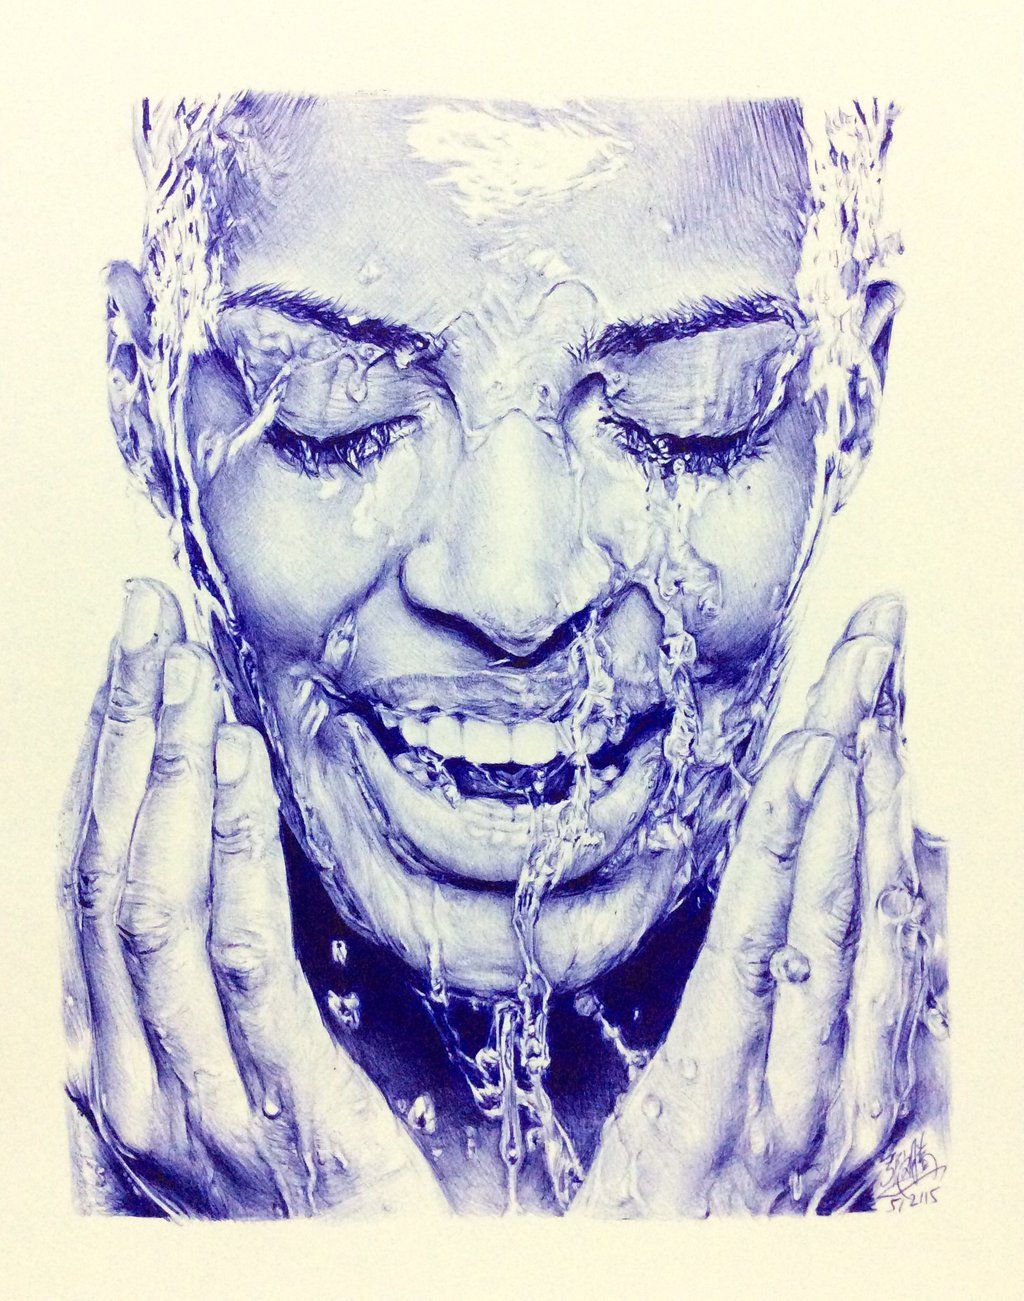 Bic ballpoint pen drawing by chaseroflight deviantart com on